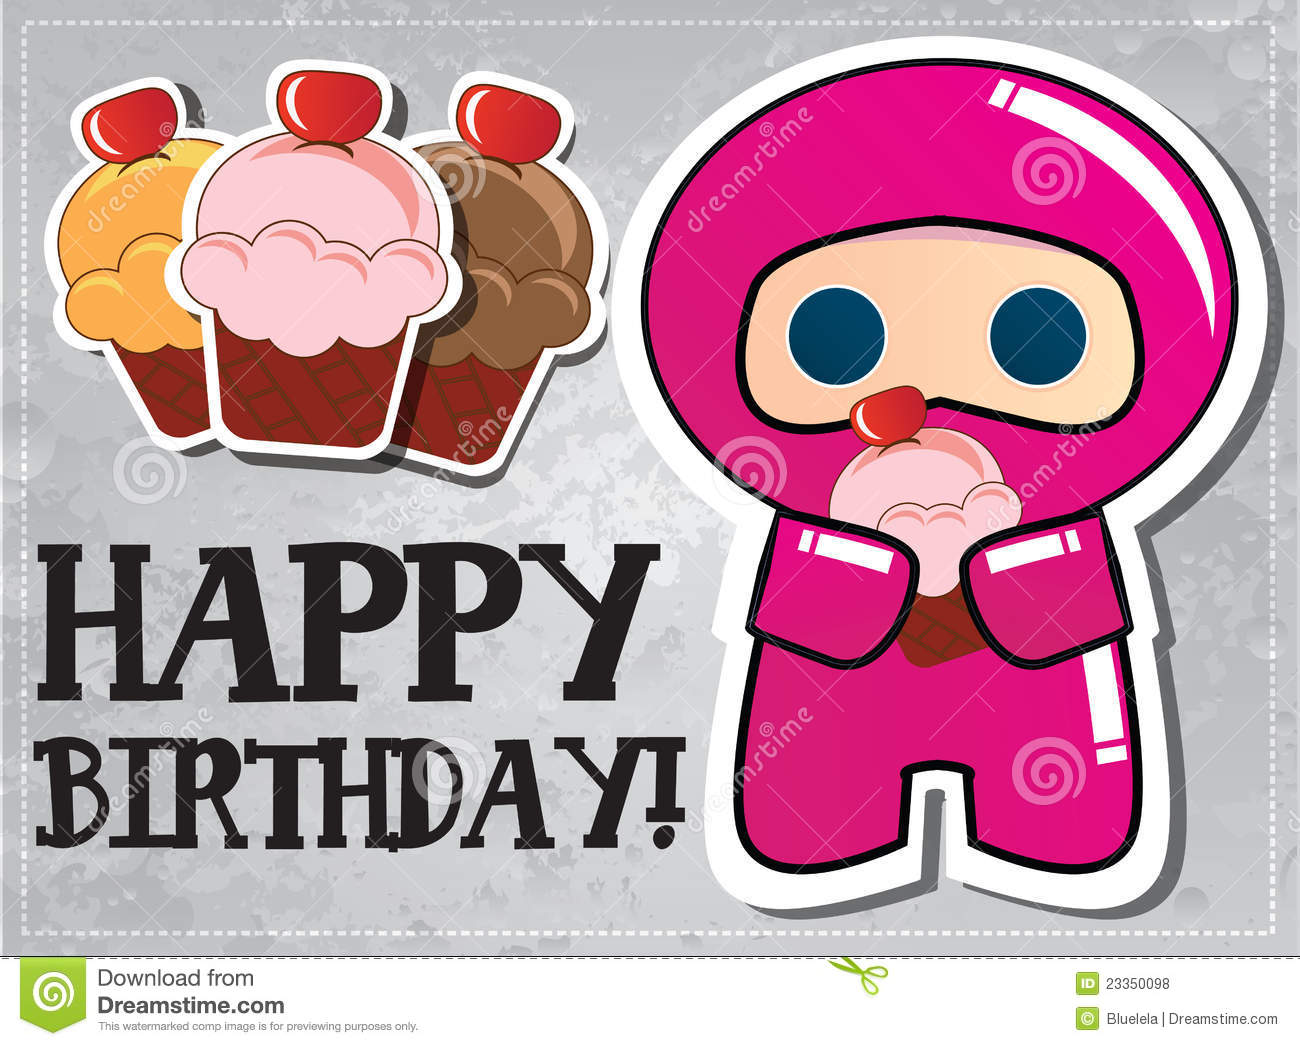 Happy Birthday Card With Cute Cartoon Ninja